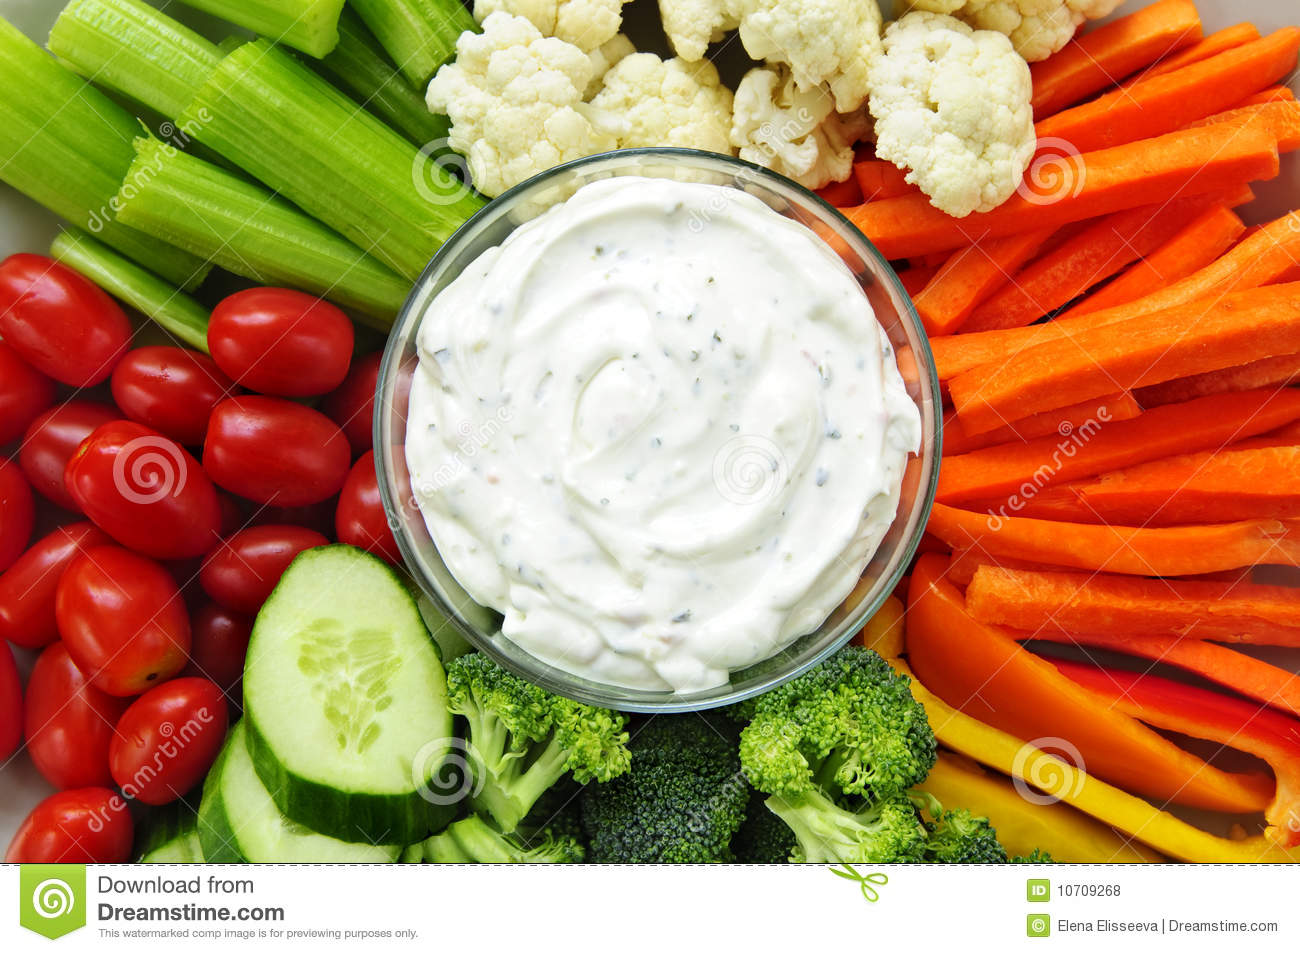 is a tomato a fruit or vegetable healthy fruit dip